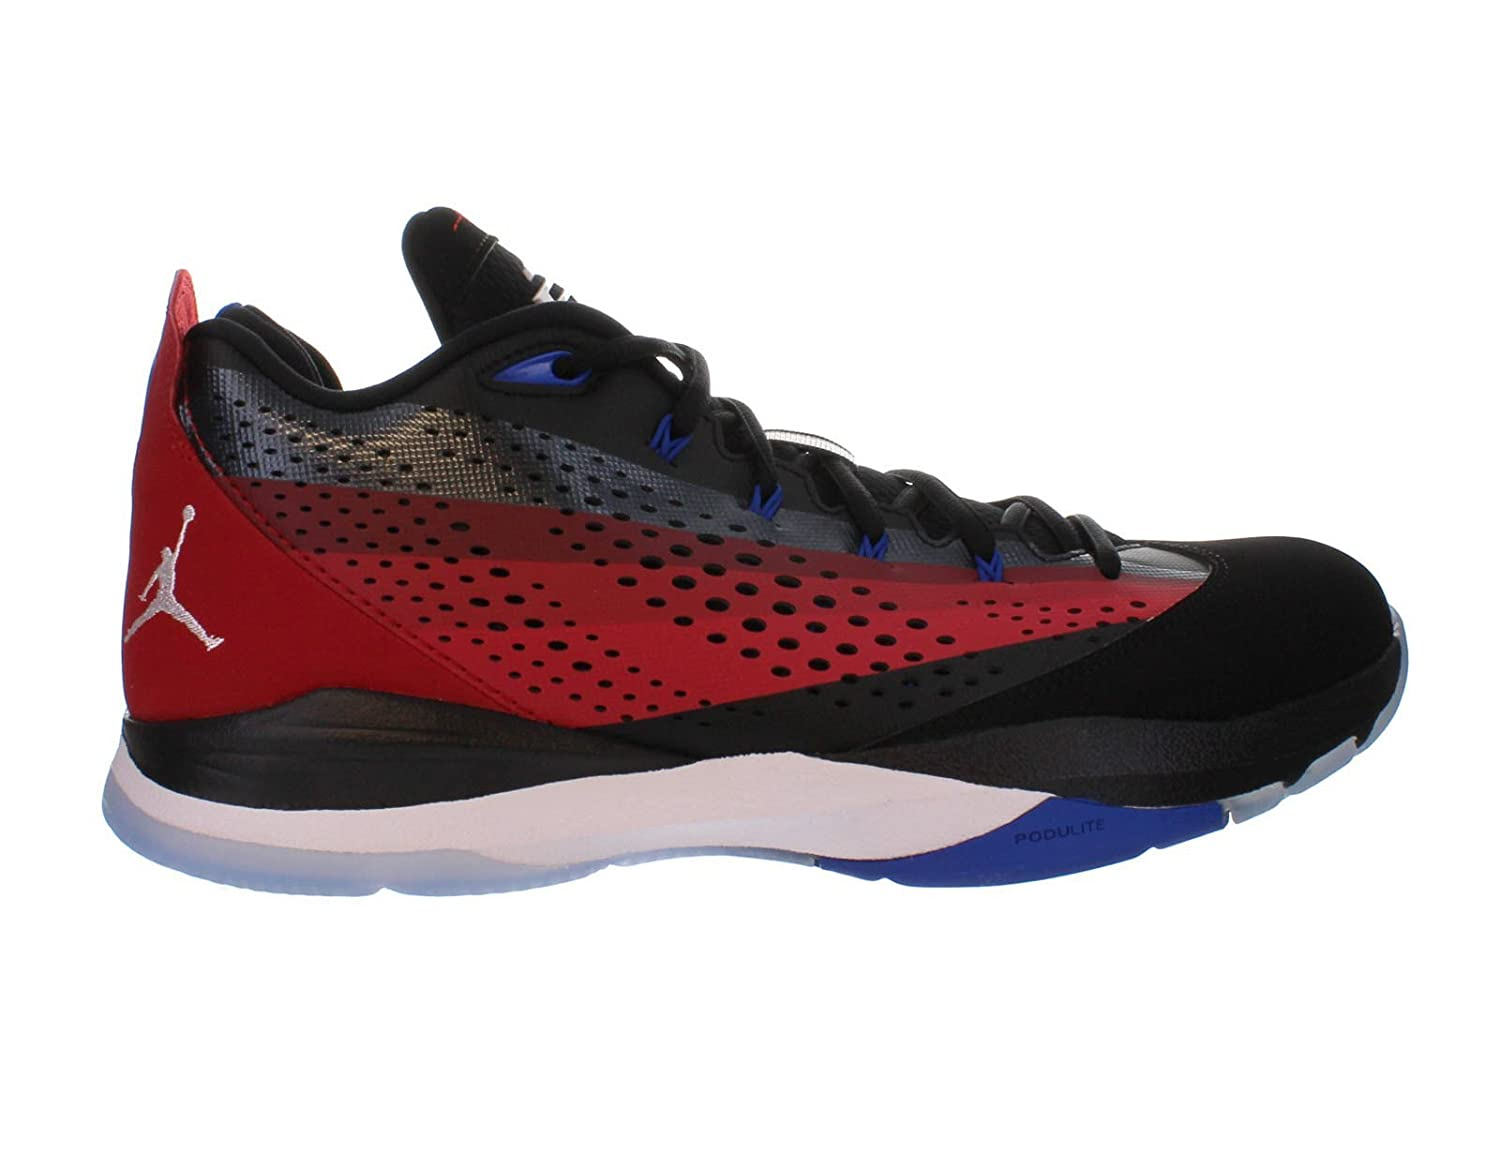 wholesale dealer 20288 c1b81 Air Jordan CP3.VII Black - White - Team Red - Gym Red Mens 12